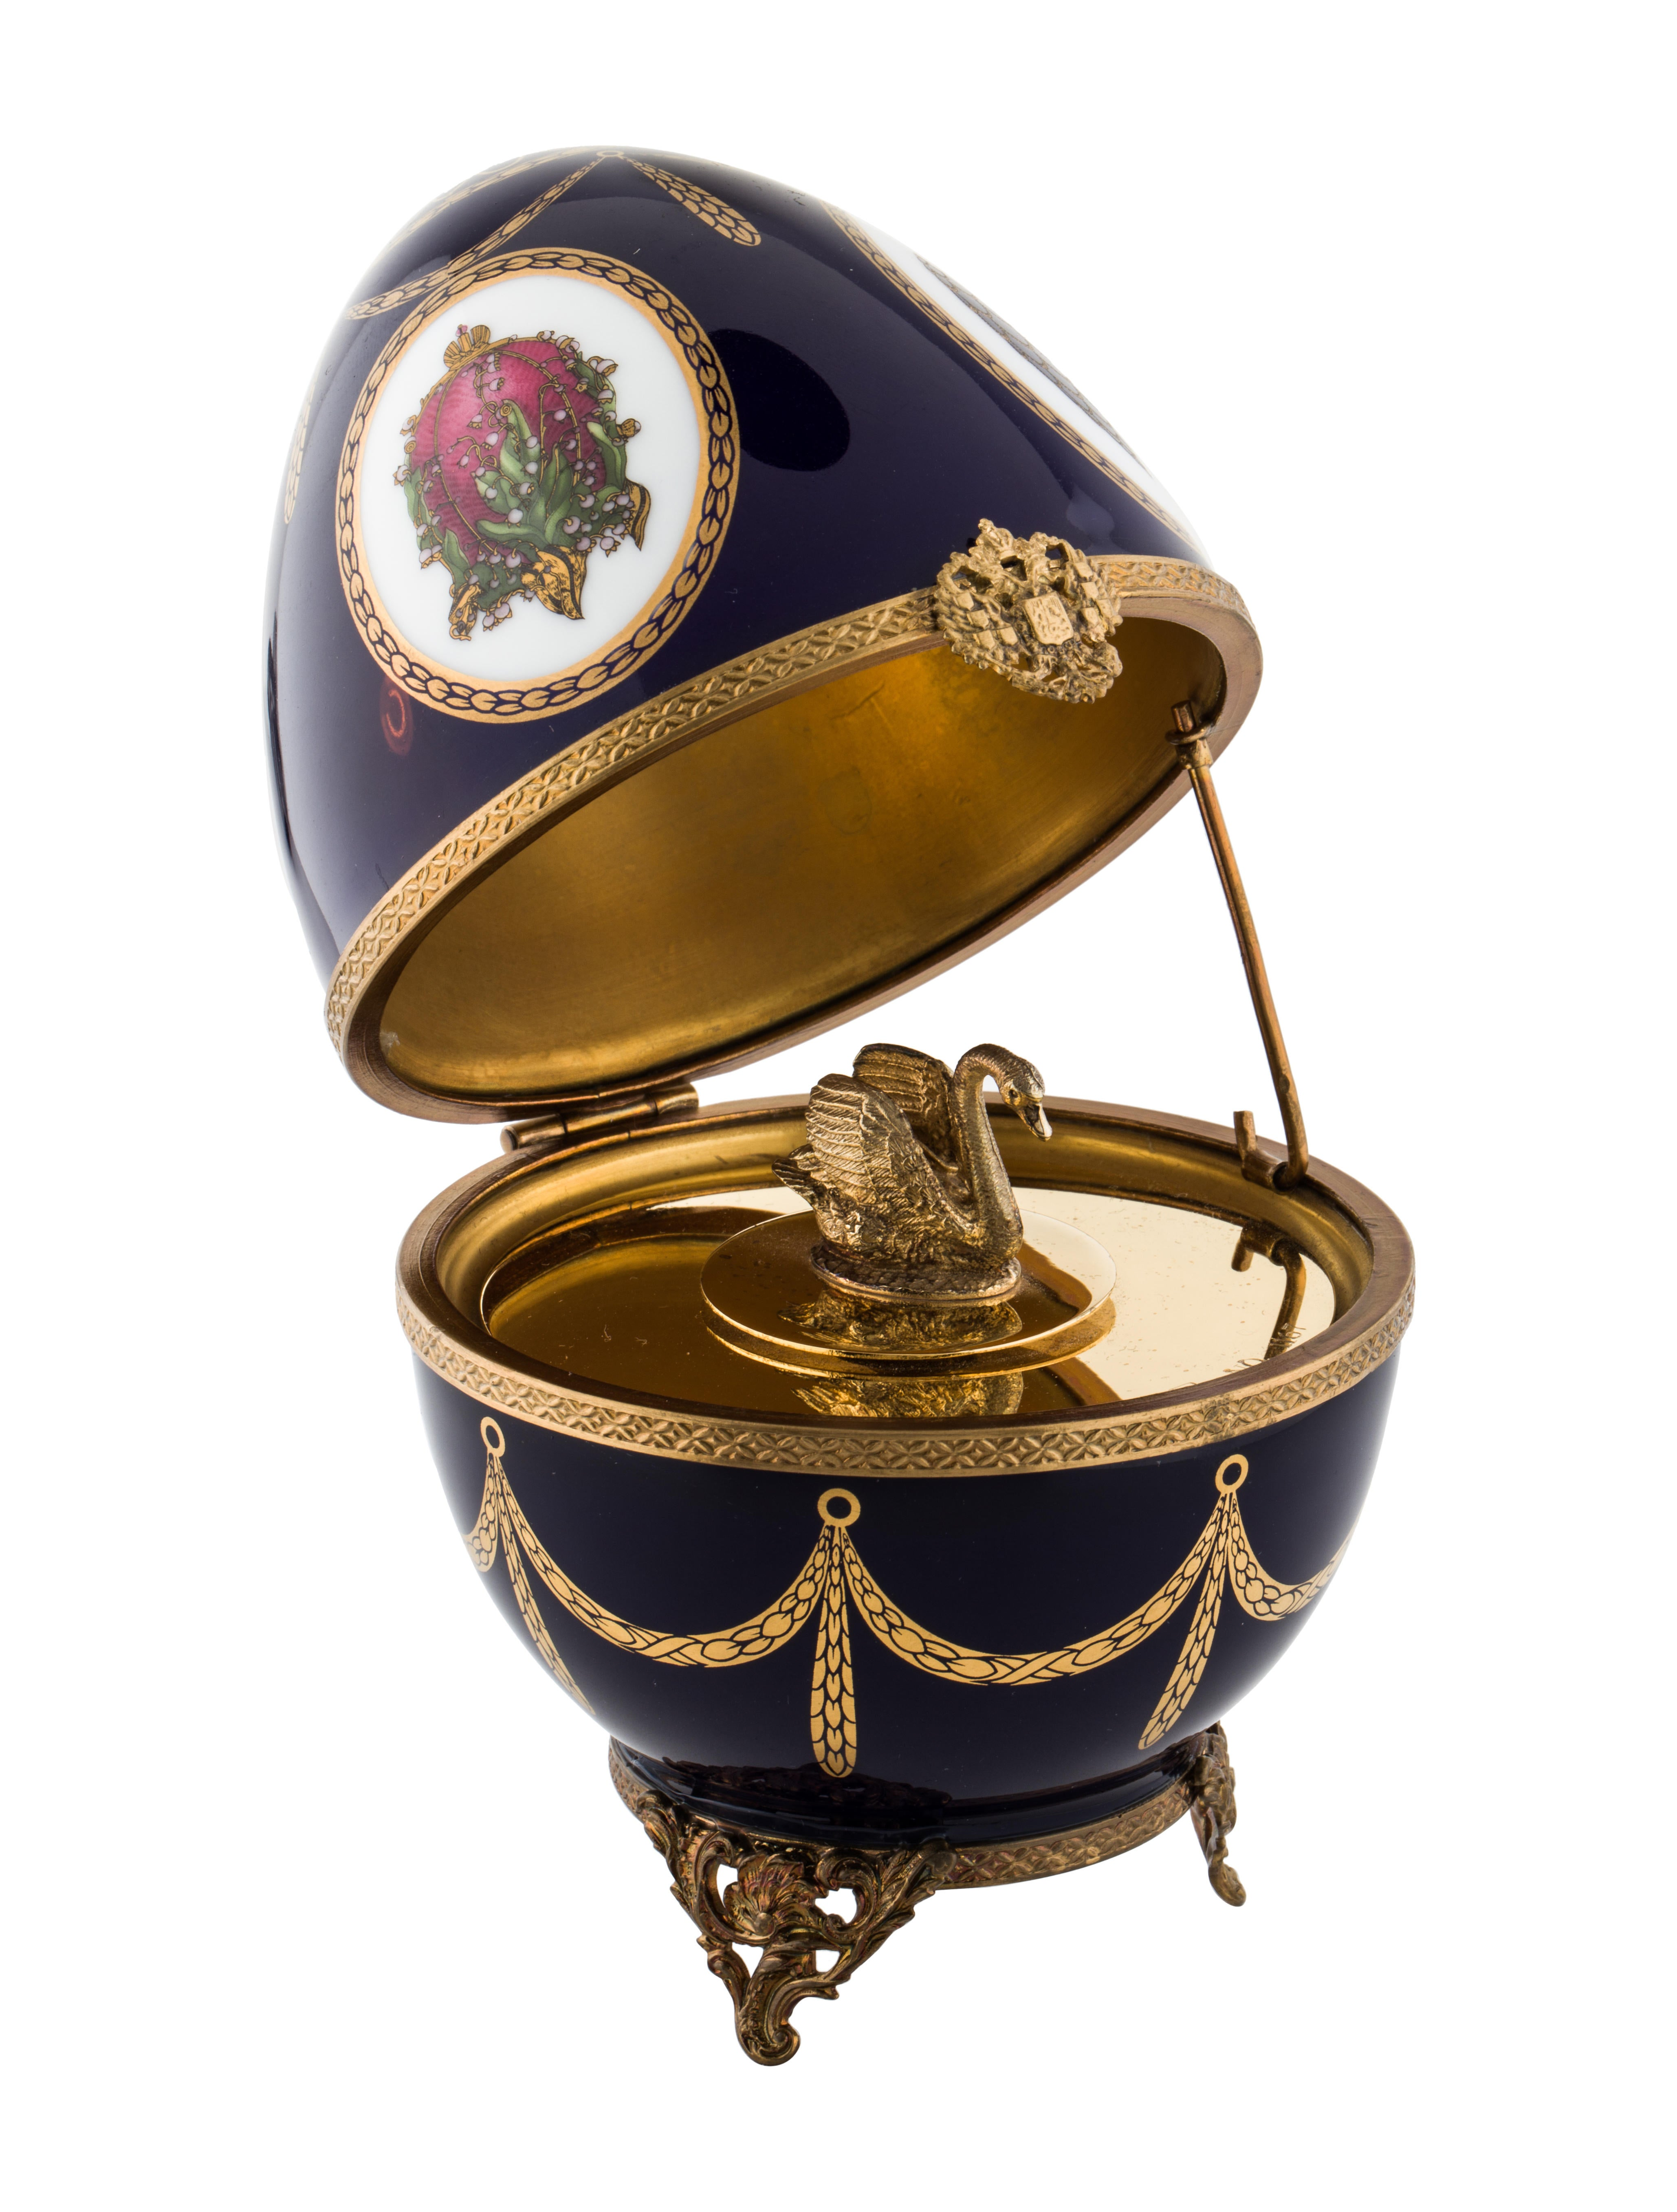 Faberg imperial swan egg music box decor and for Artistic accents genuine silver decoration